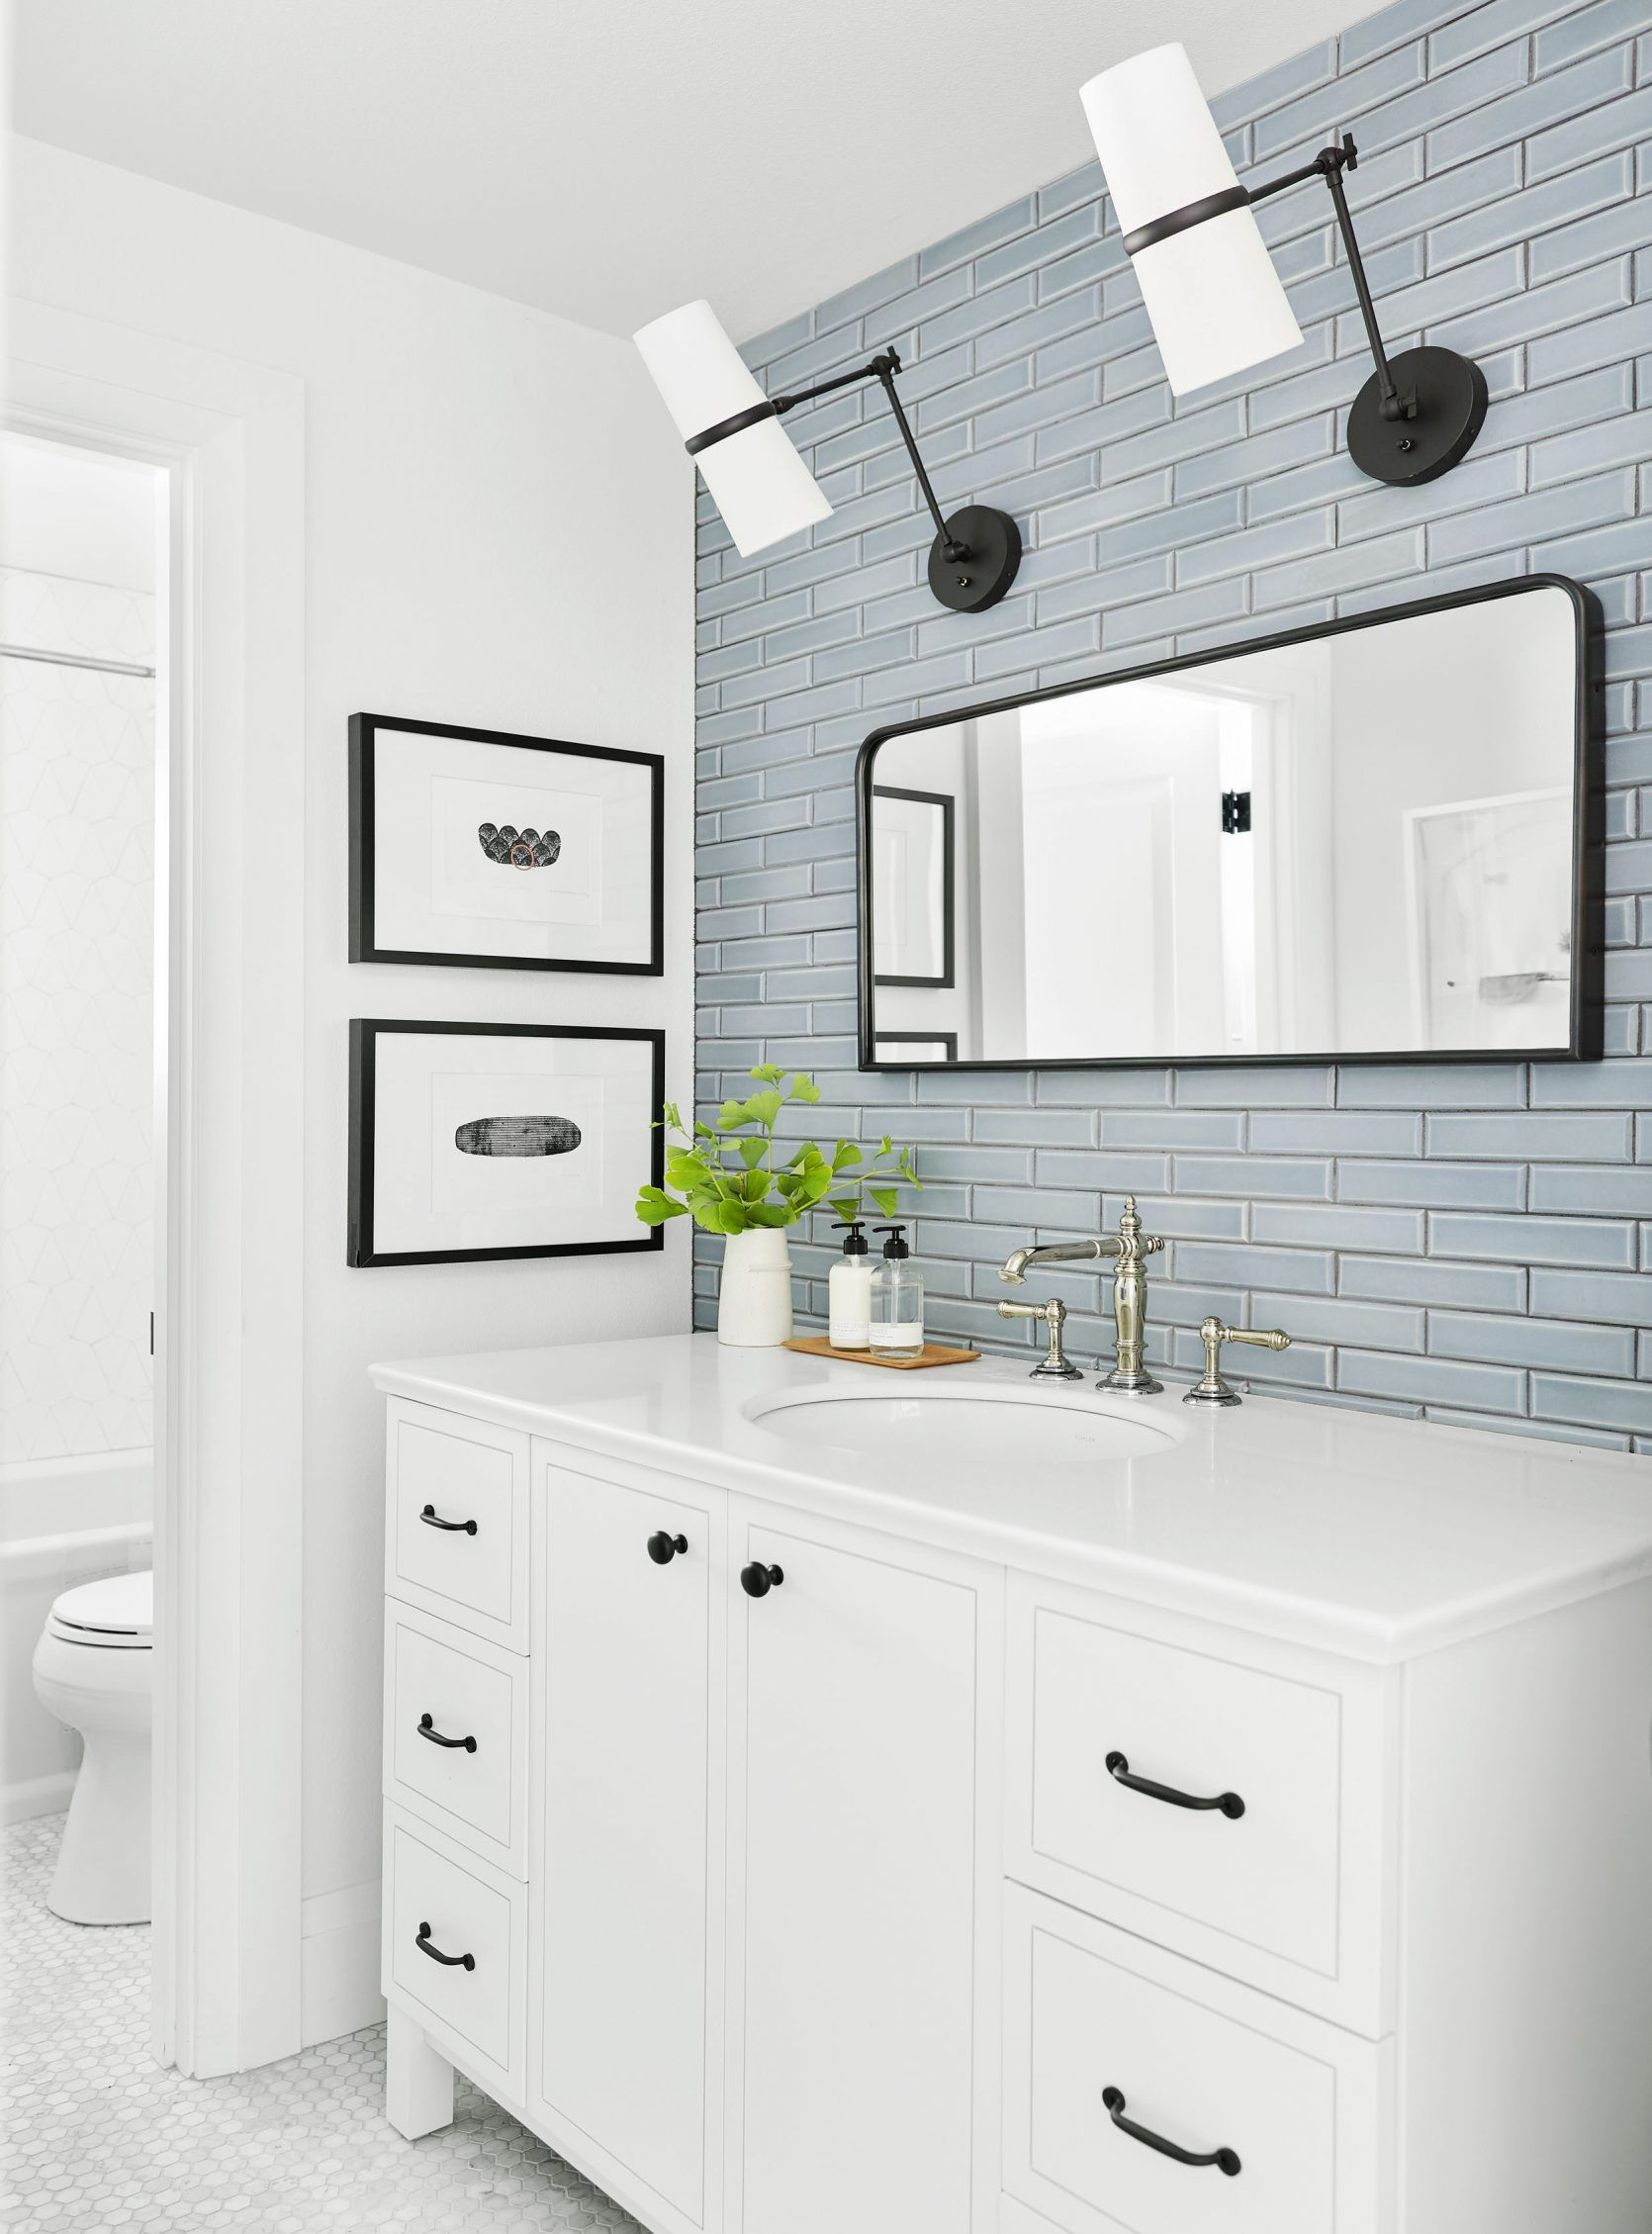 10 Of The Most Exciting Bathroom Design Trends For 2019 Bathroom Trends Bathroom Design Trends Bathroom Layout